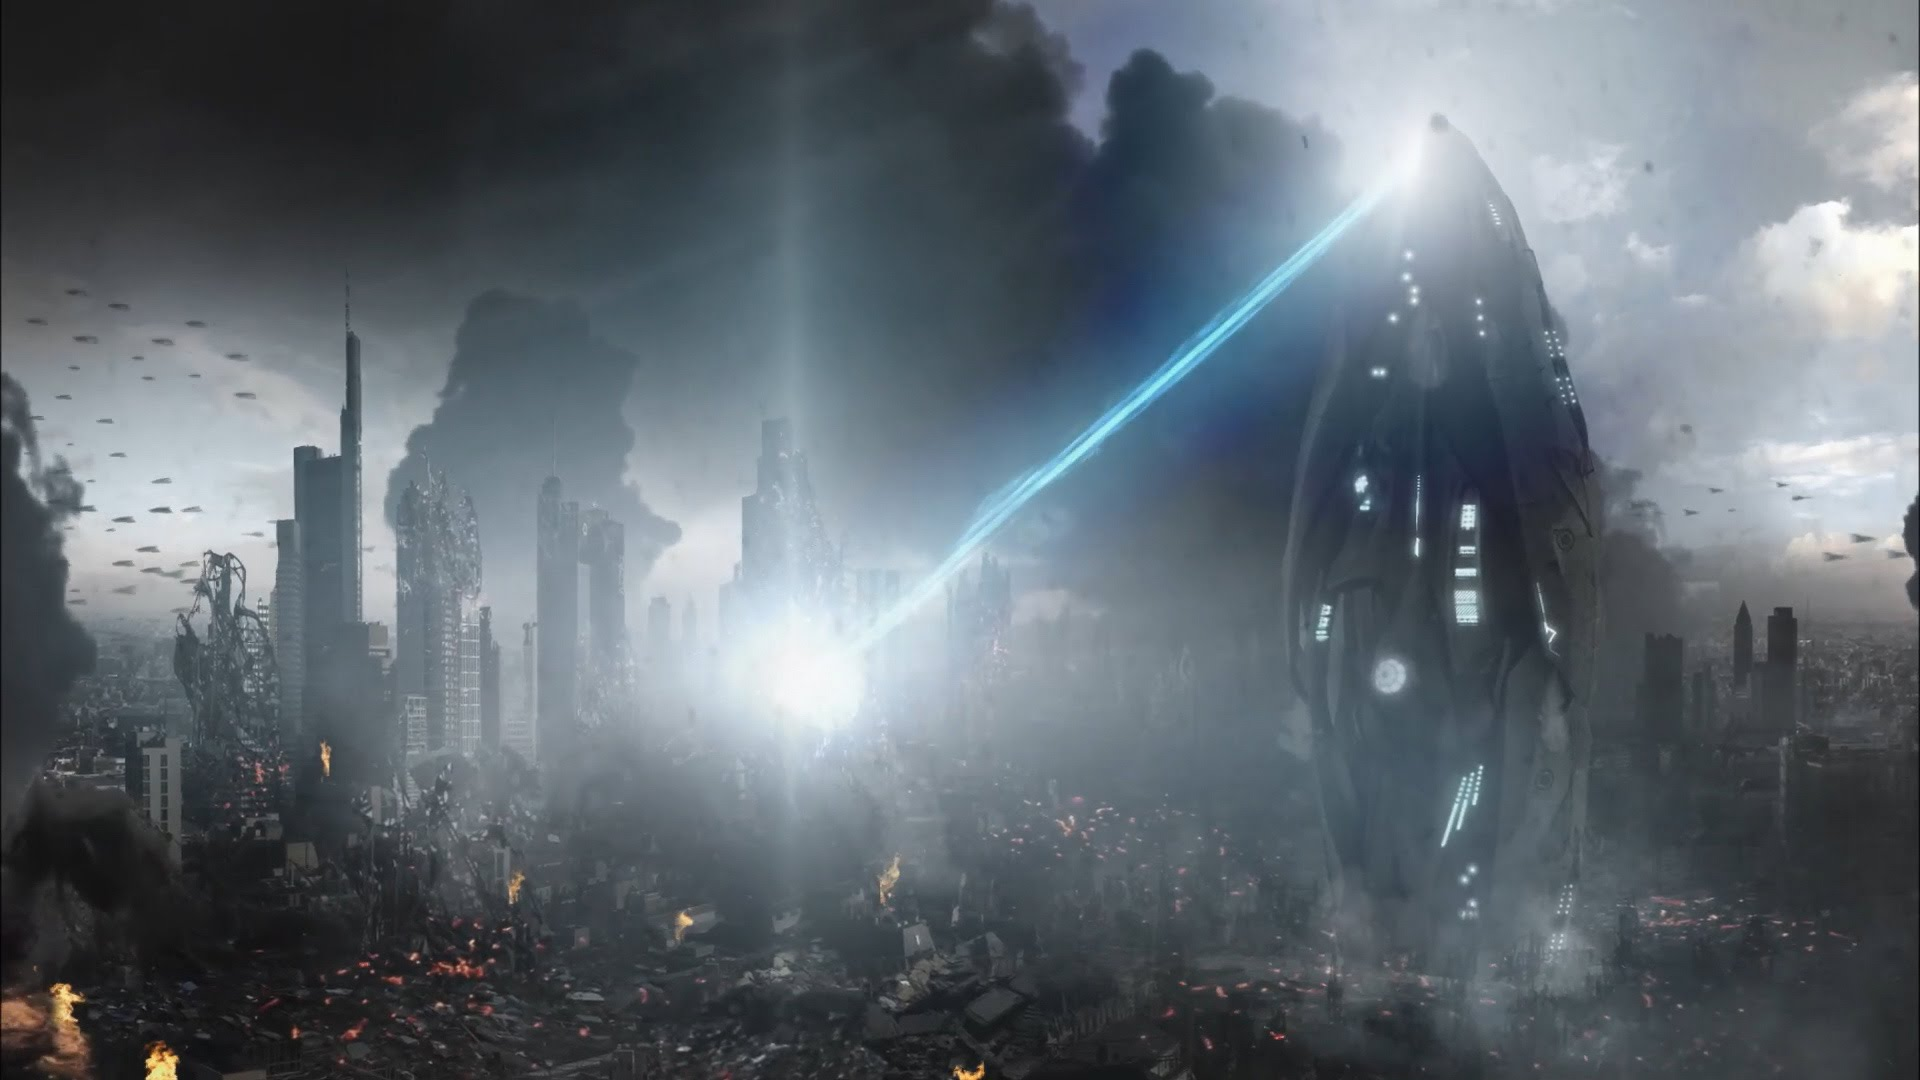 Alien Outpost wallpapers Movie HQ Alien Outpost pictures 4K 1920x1080